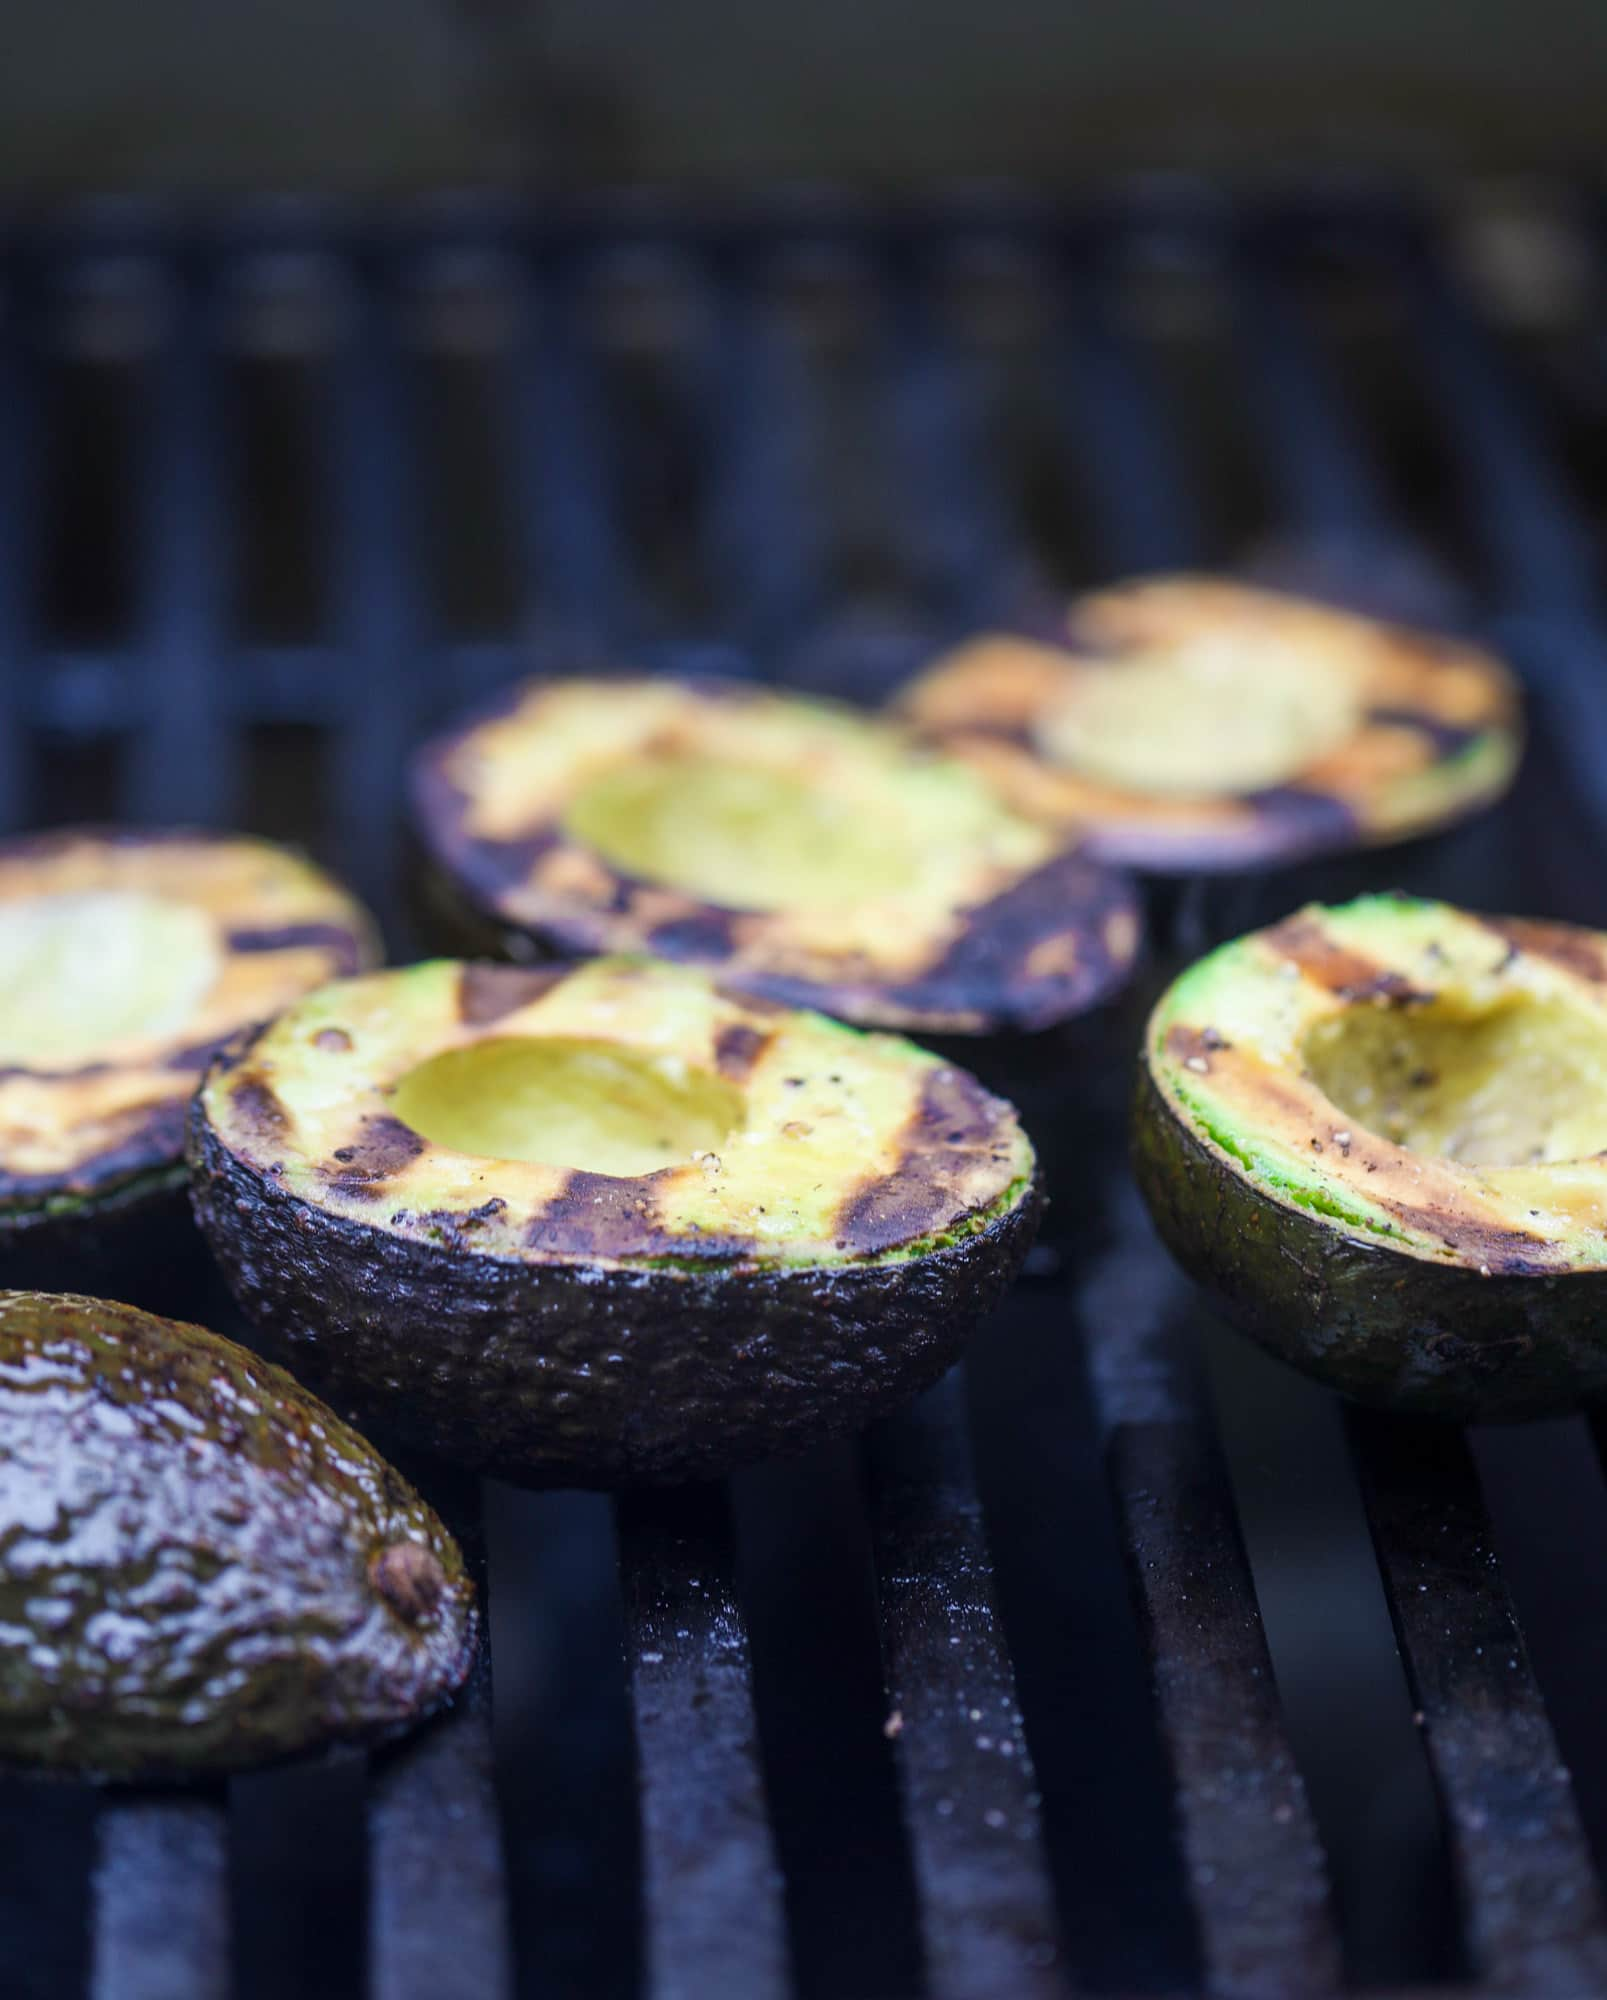 grilling avocados